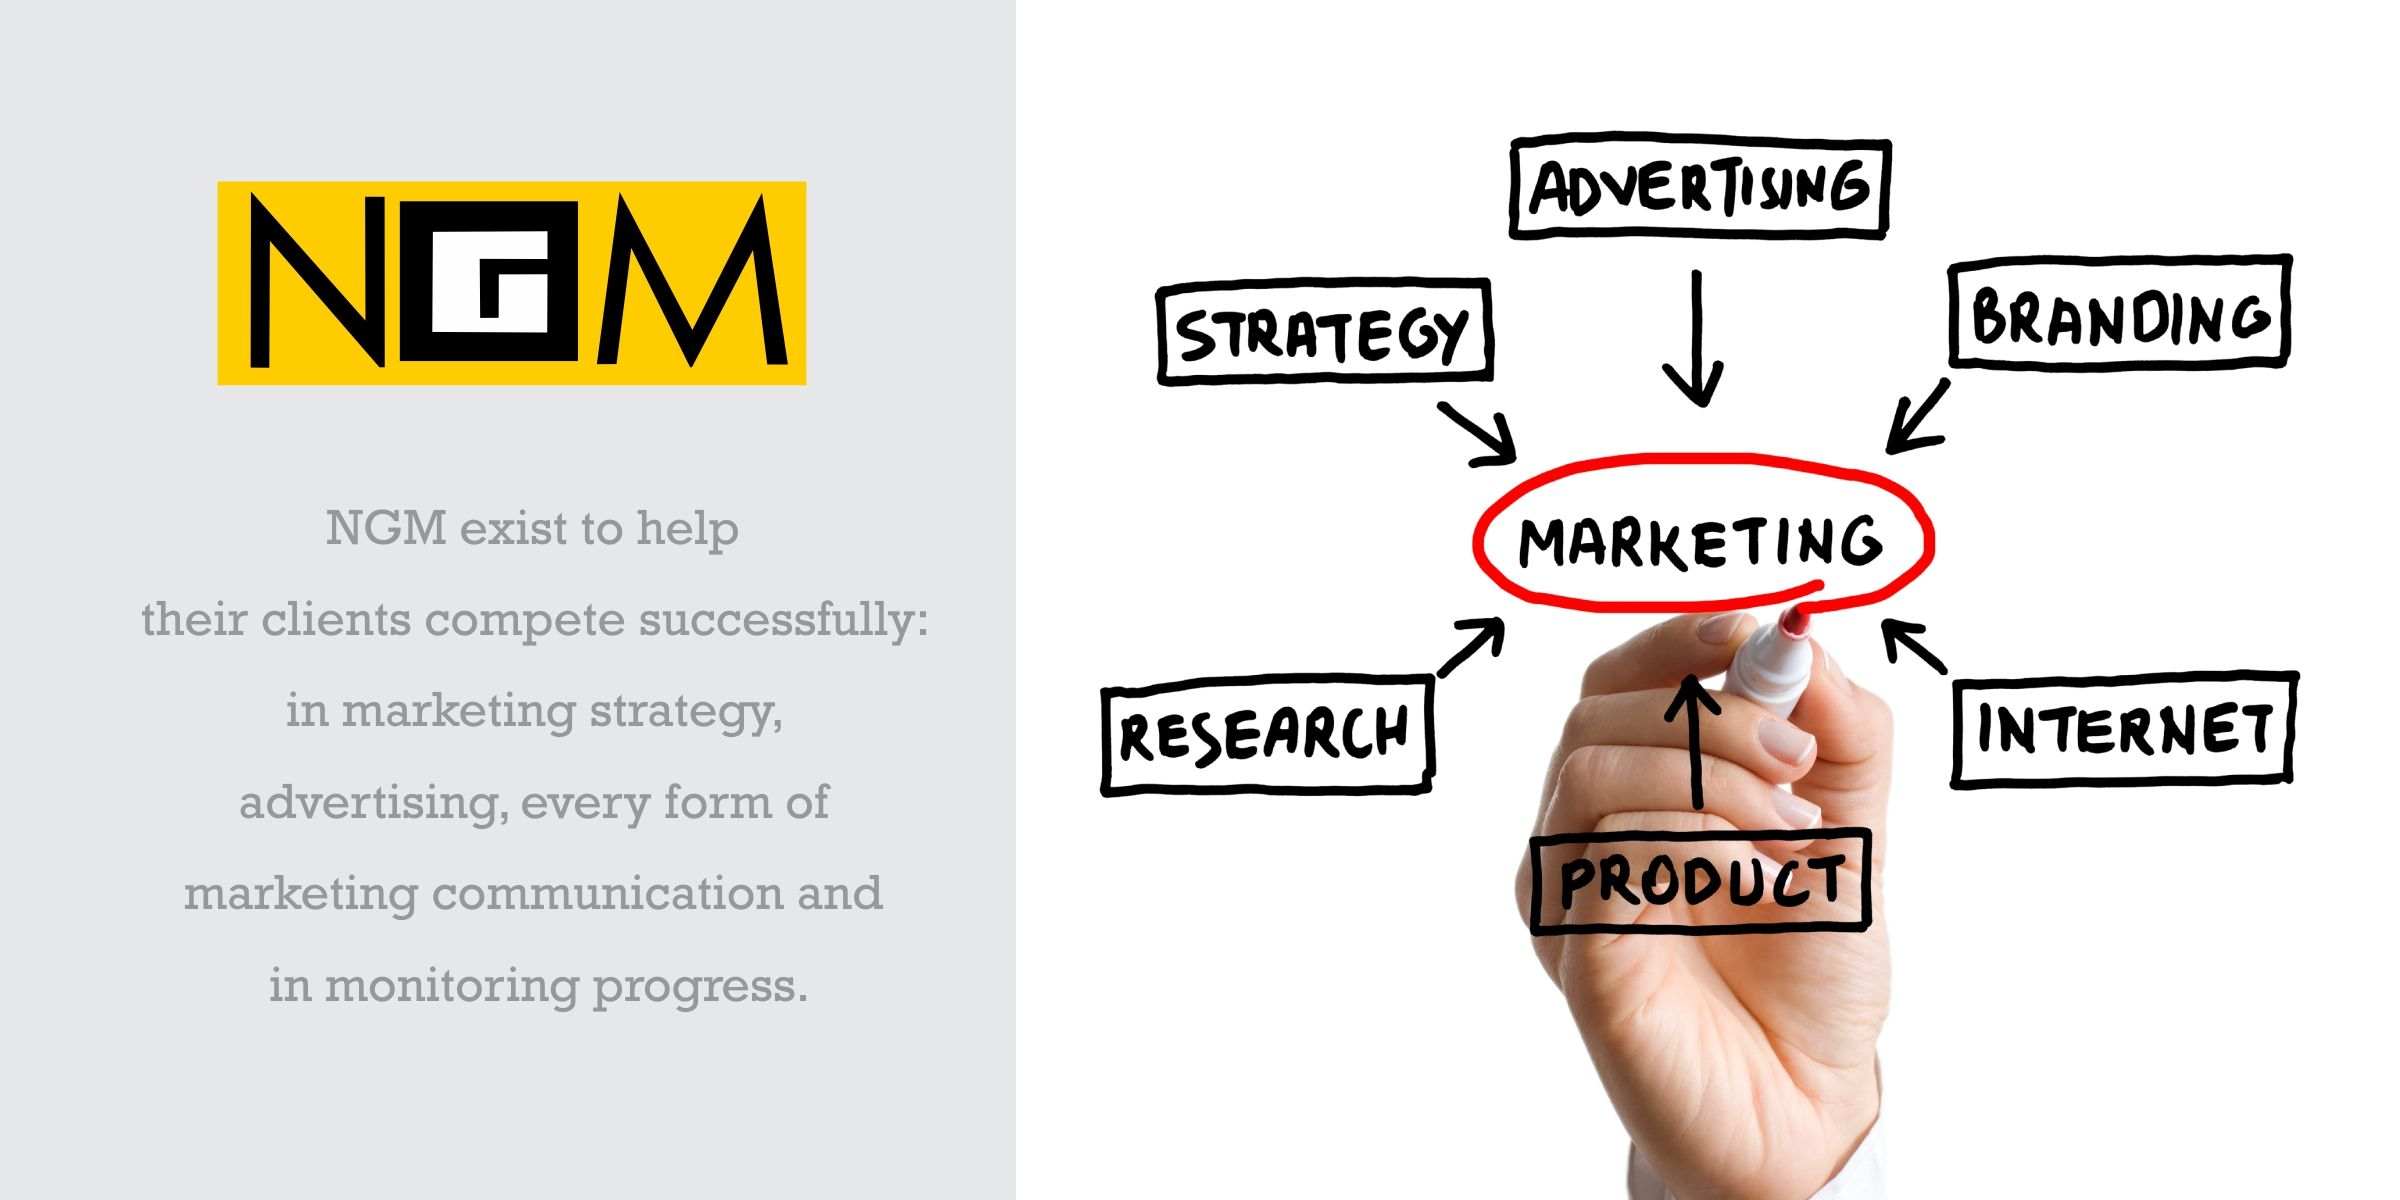 NGM exist to help their clients compete successfully: in marketing strategy, advertising, every form of marketing communication and in monitoring progress. NGM's photo. For More : http://www.ngm.co.in/